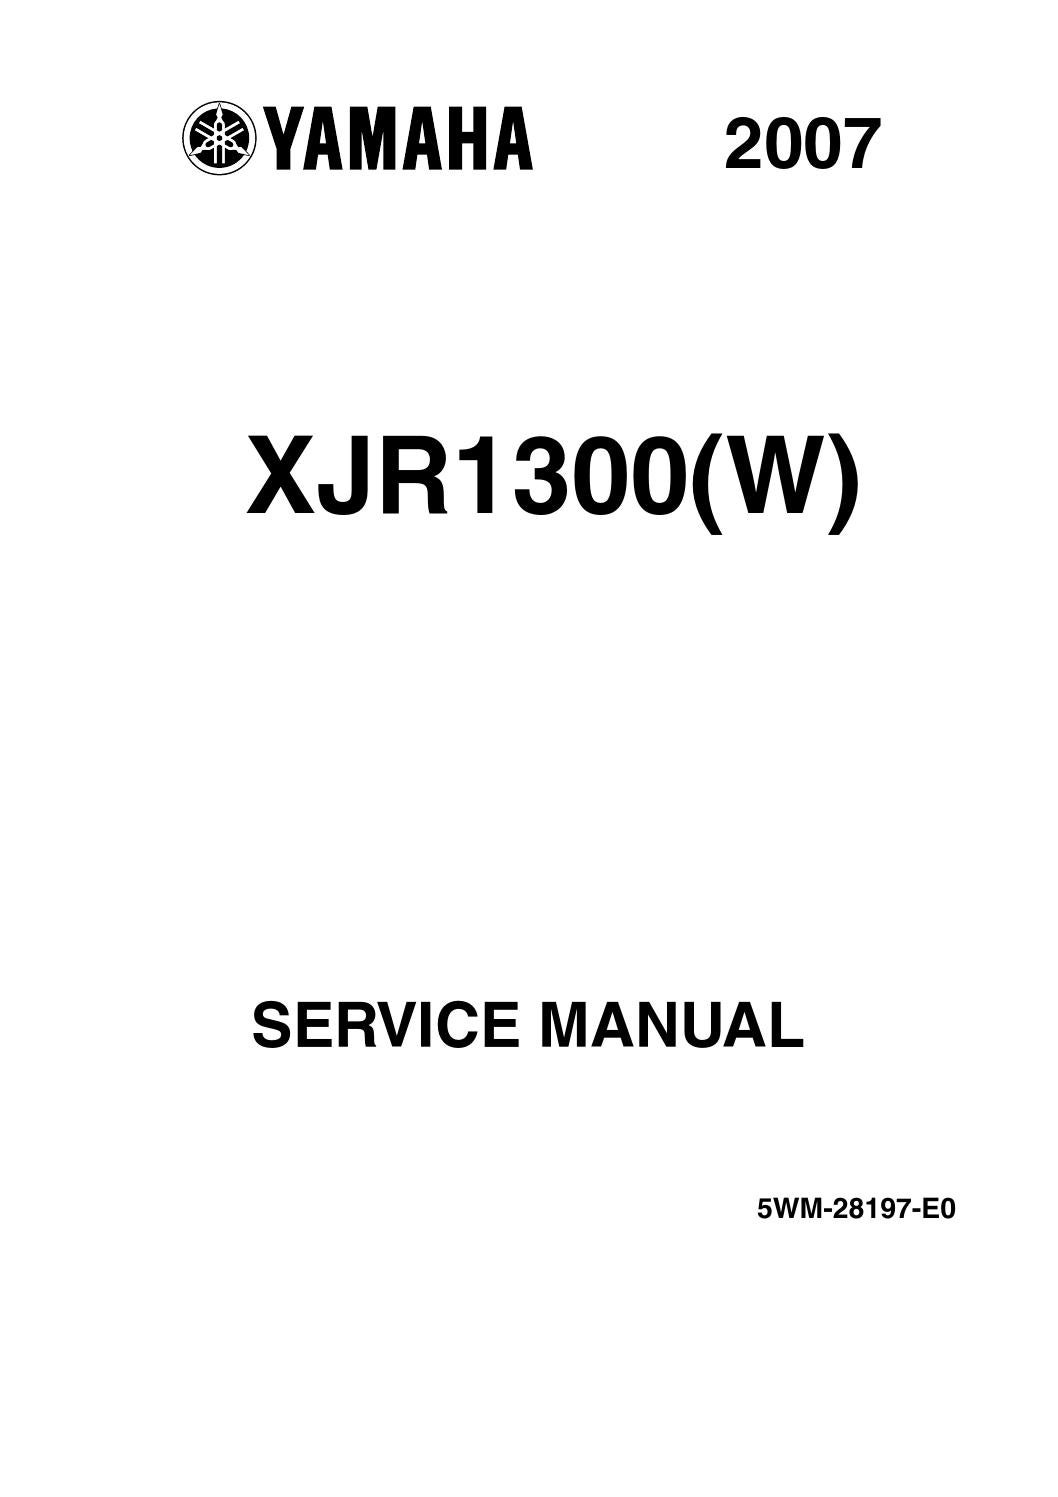 Service Manual XJR1300(W) '07 5WM-28197-E0 by XJR Owners